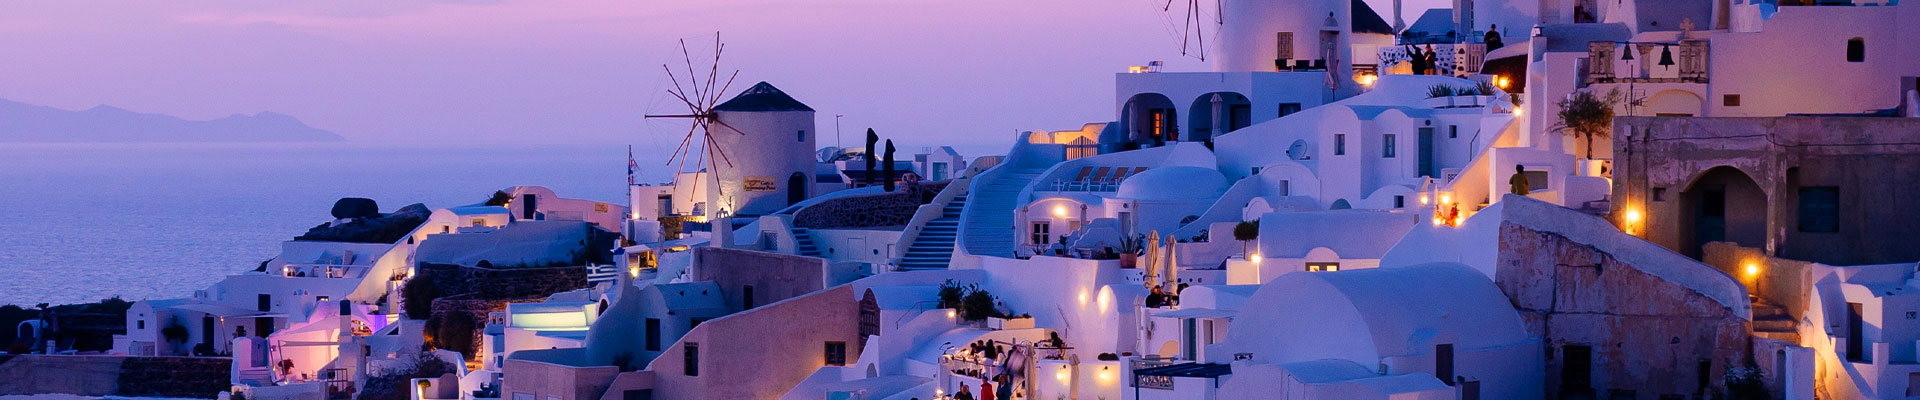 White buildings with a purple glow in Greece